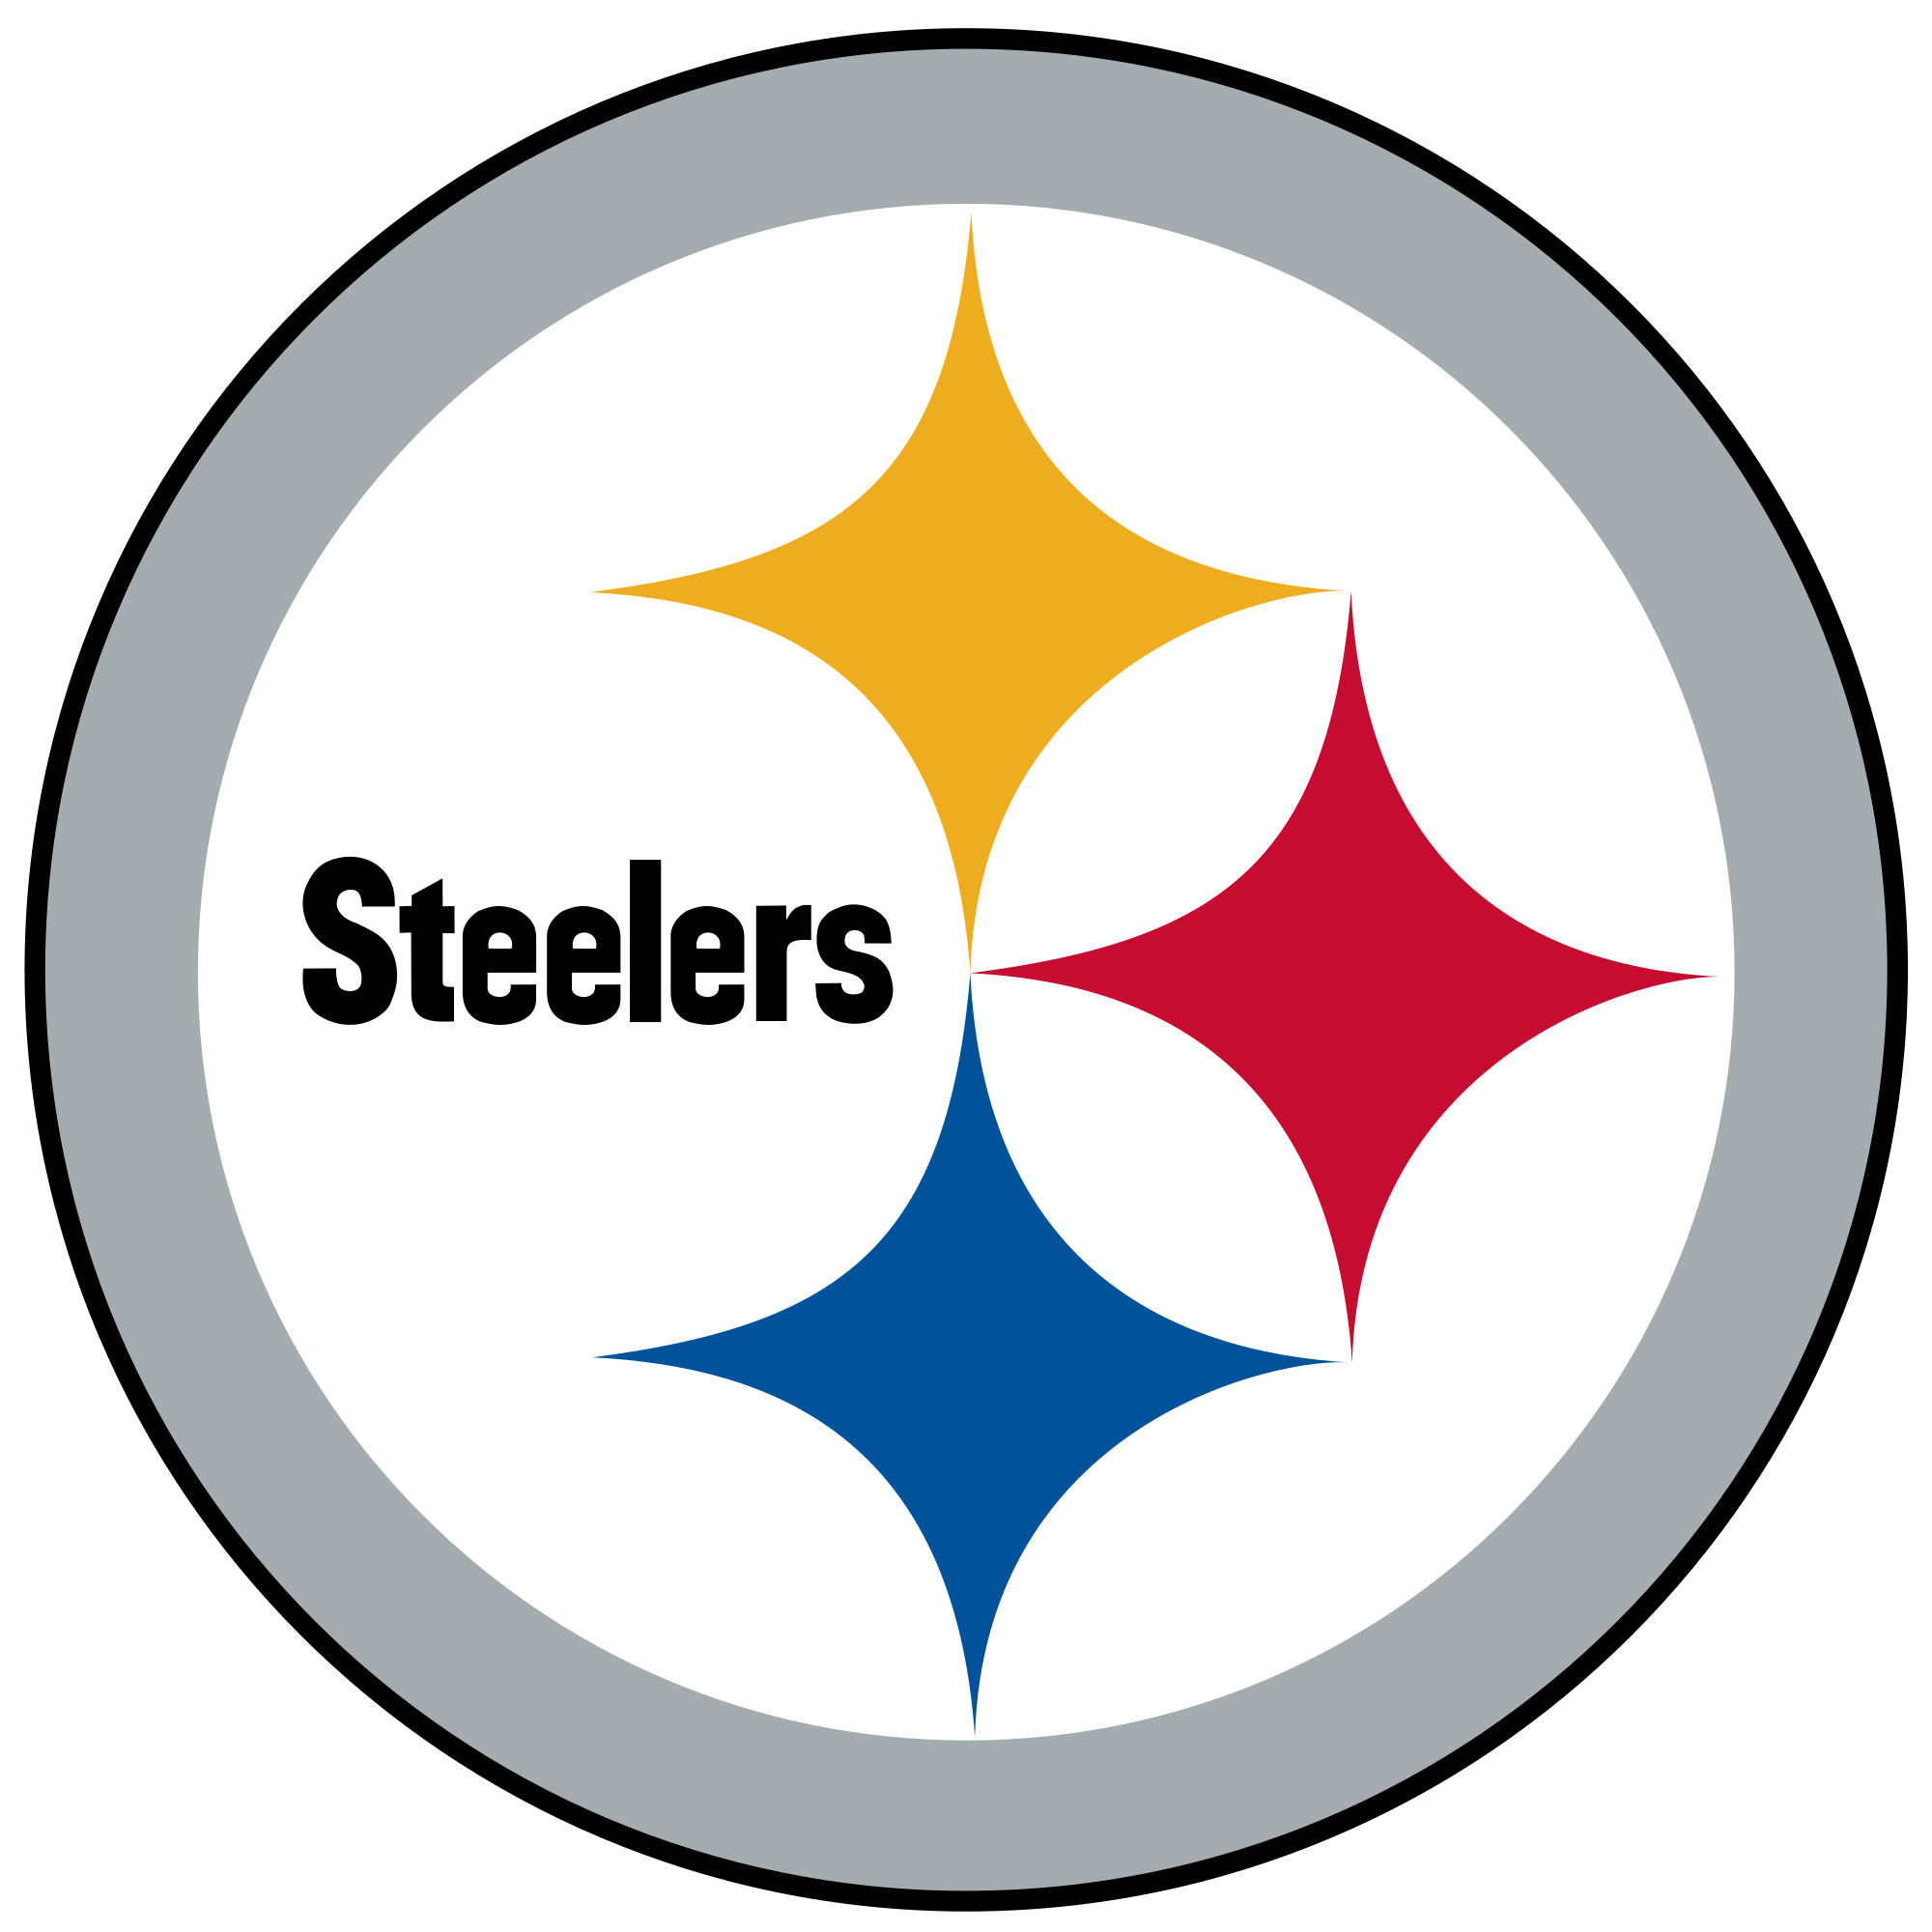 steelers vector high resolution